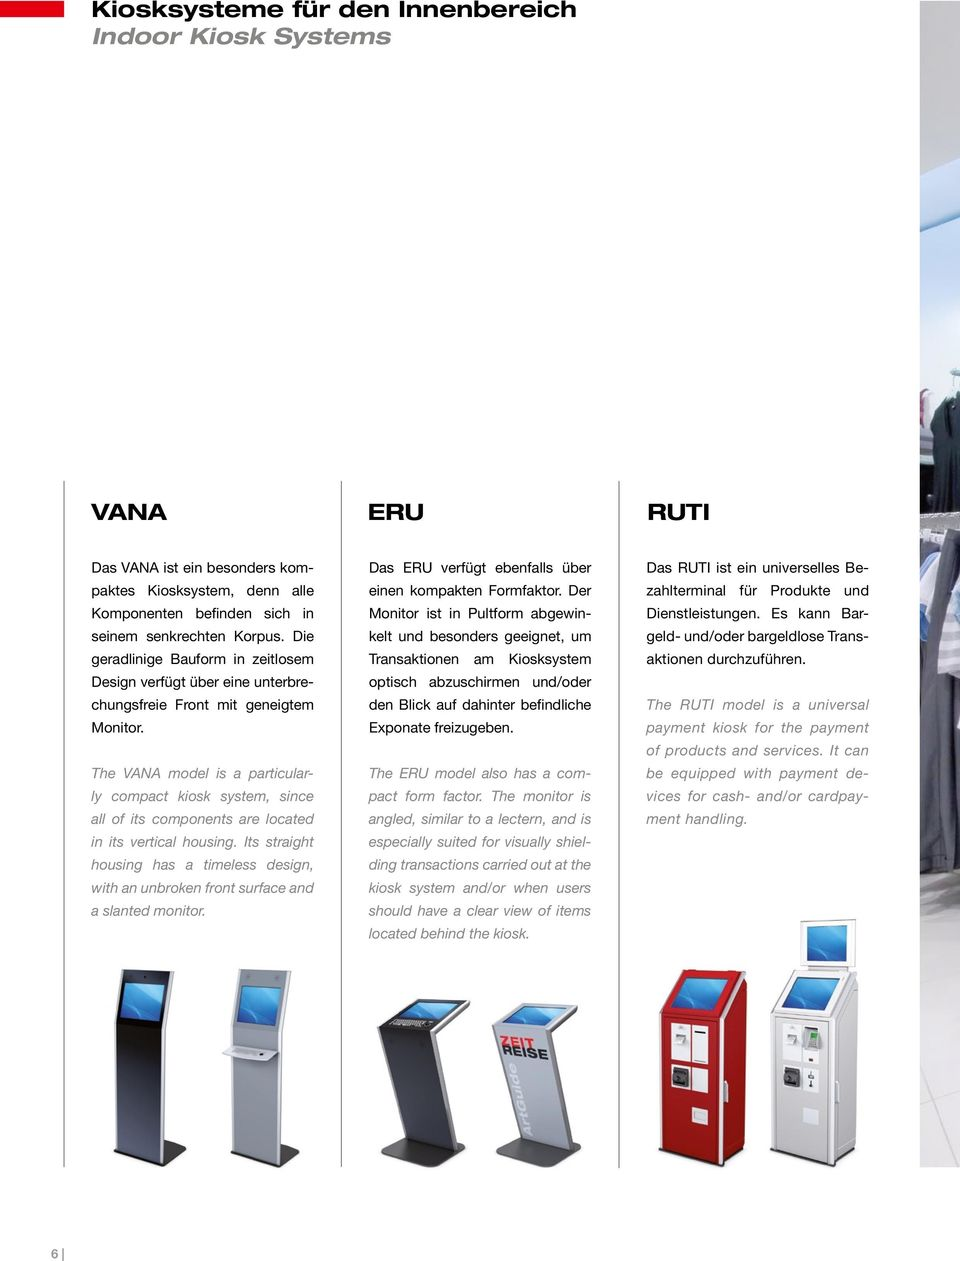 The VANA model is a particularly compact kiosk system, since all of its components are located in its vertical housing.